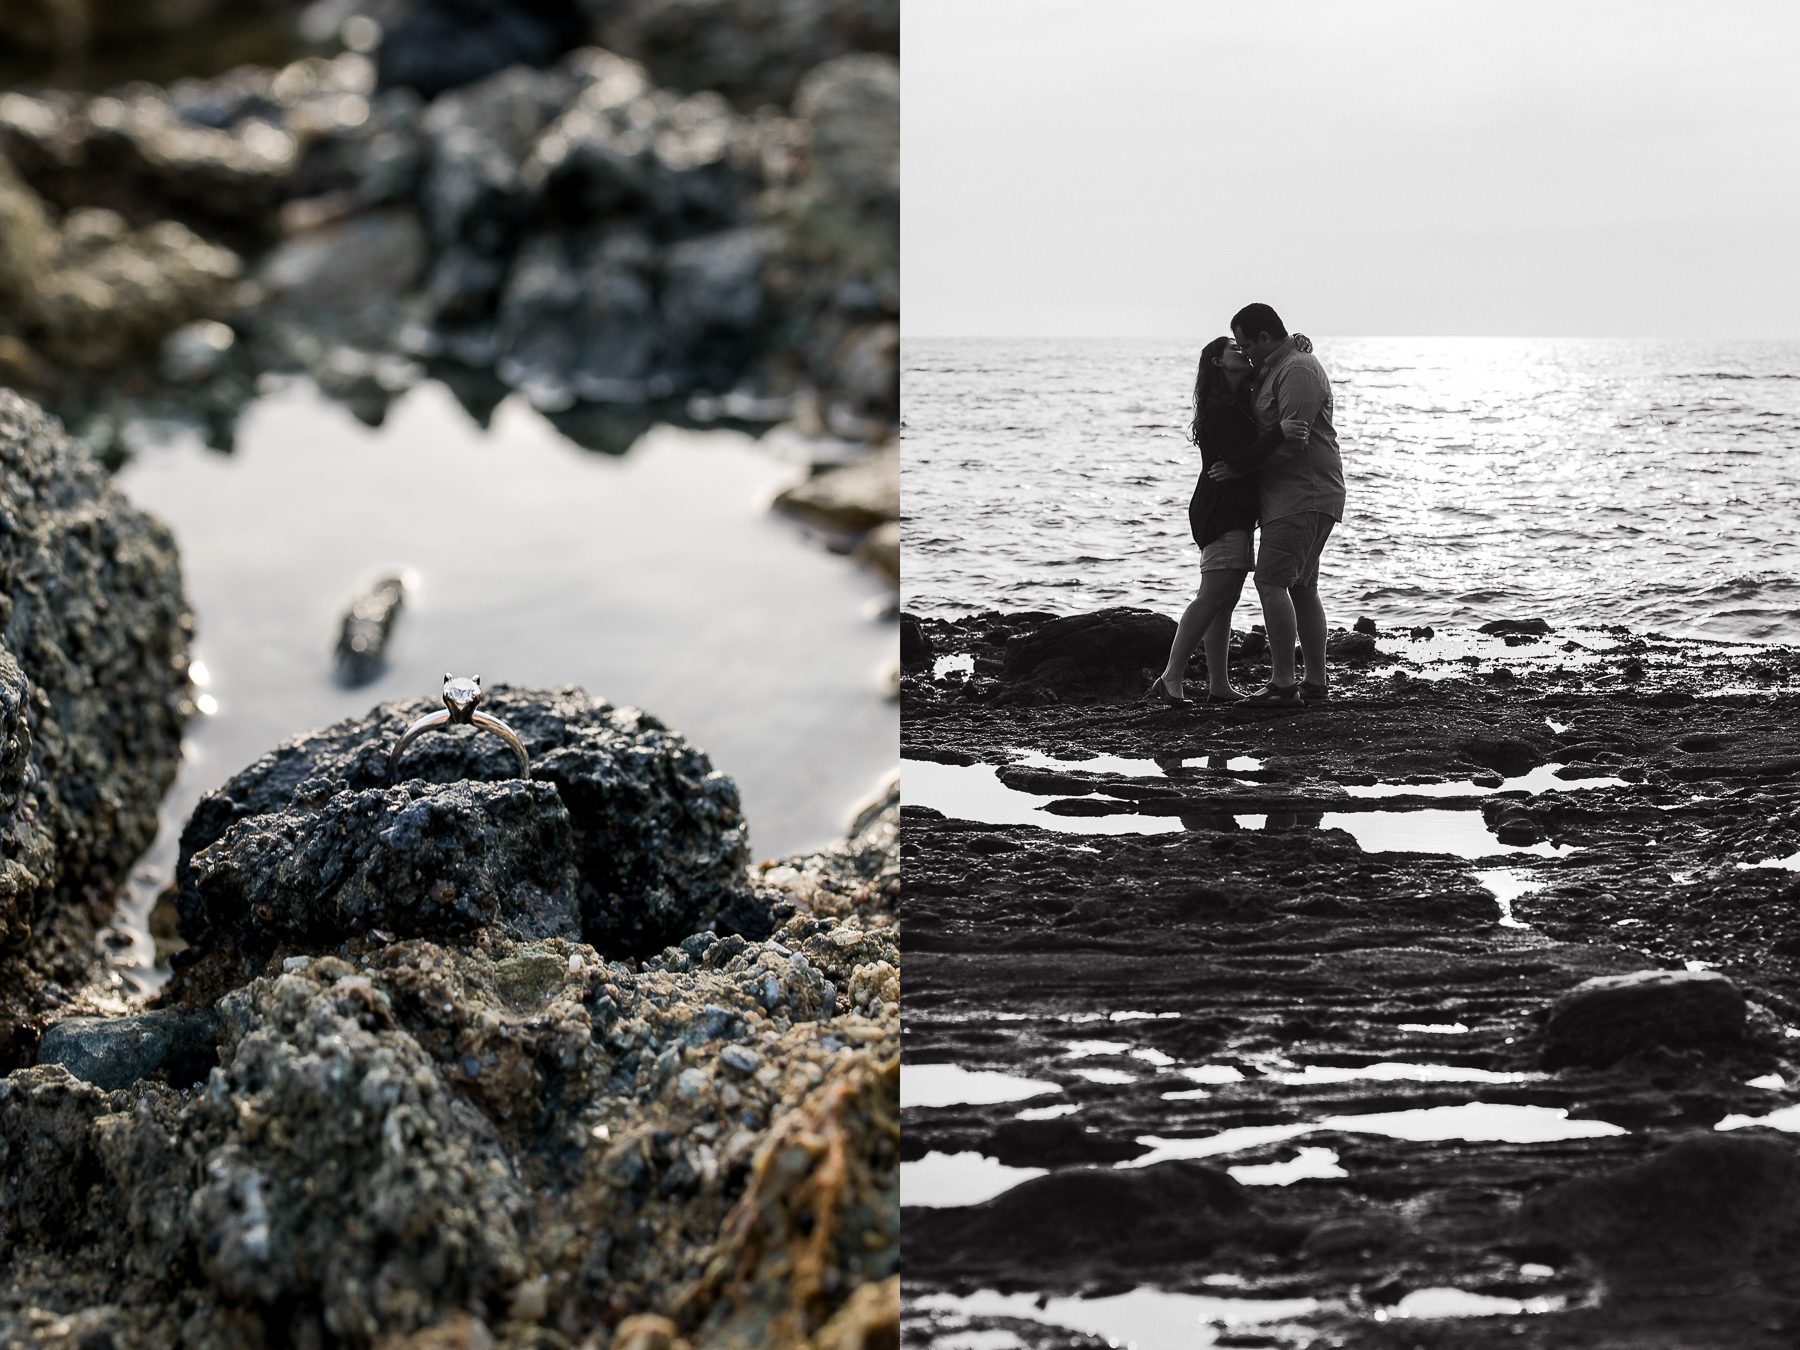 Tide pool engagement photos by Megan Lee Photography